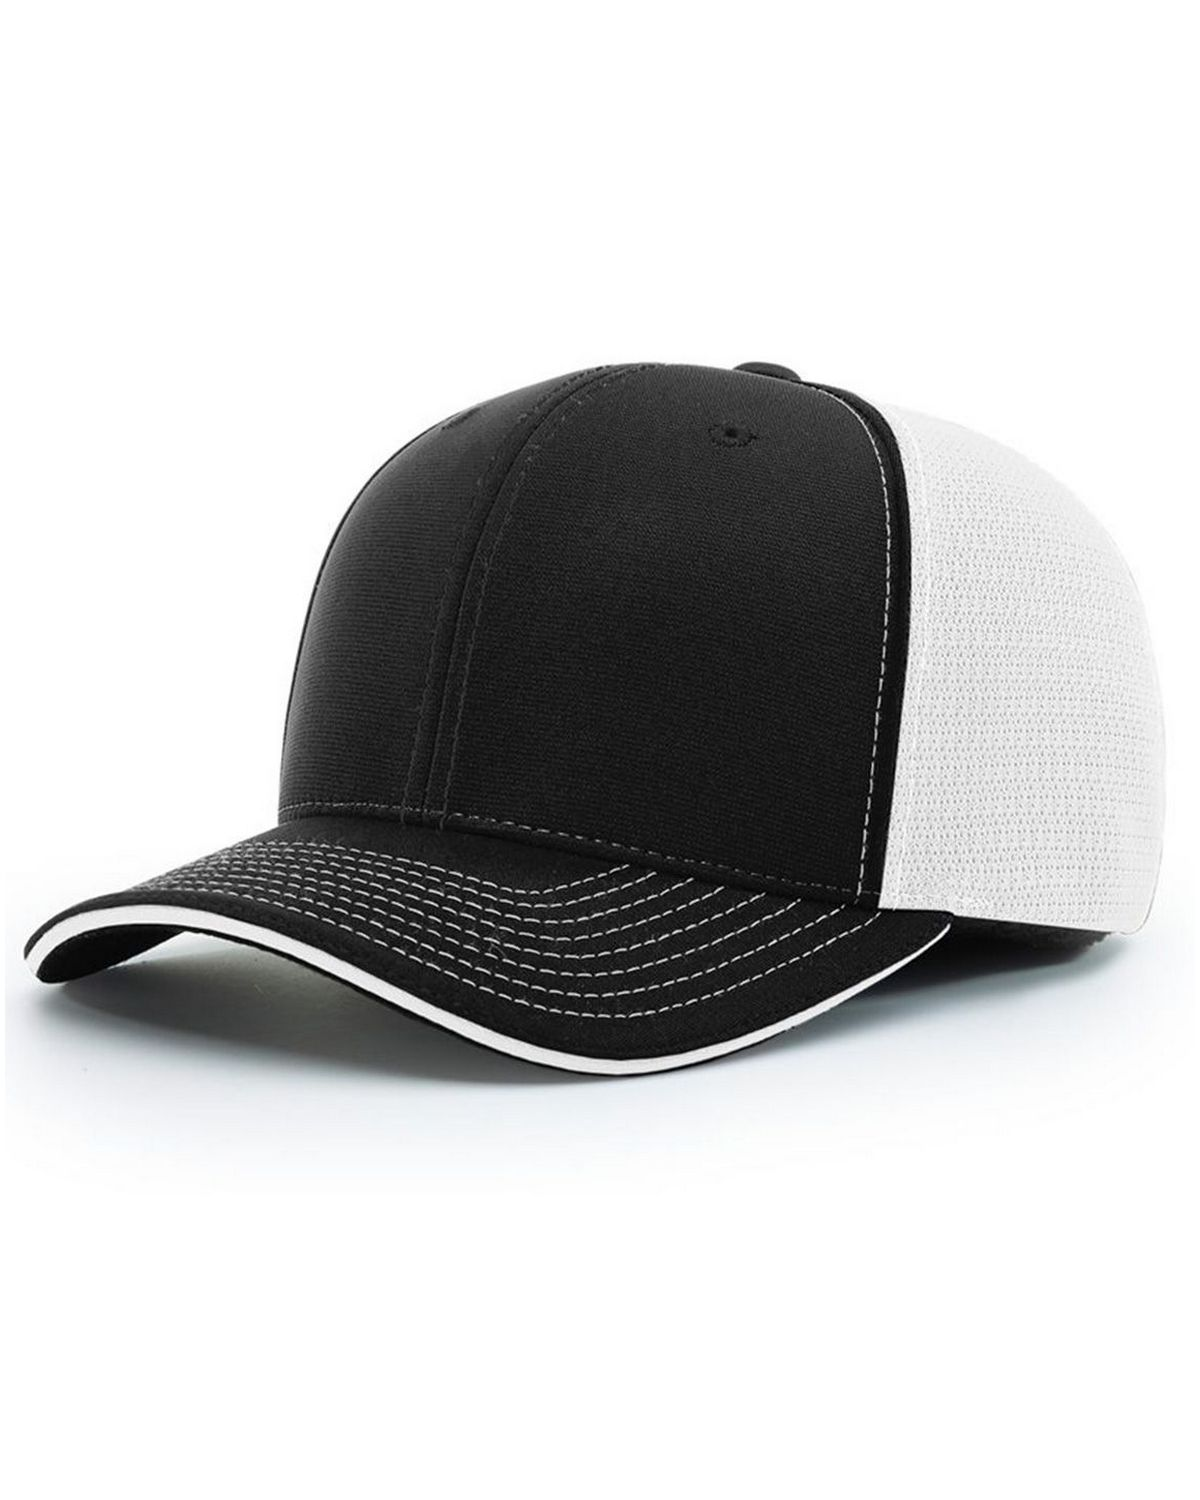 cc8747767ec60 Richardson 172 Pulse Sportmesh Cap with R-Flex - Free Shipping Available